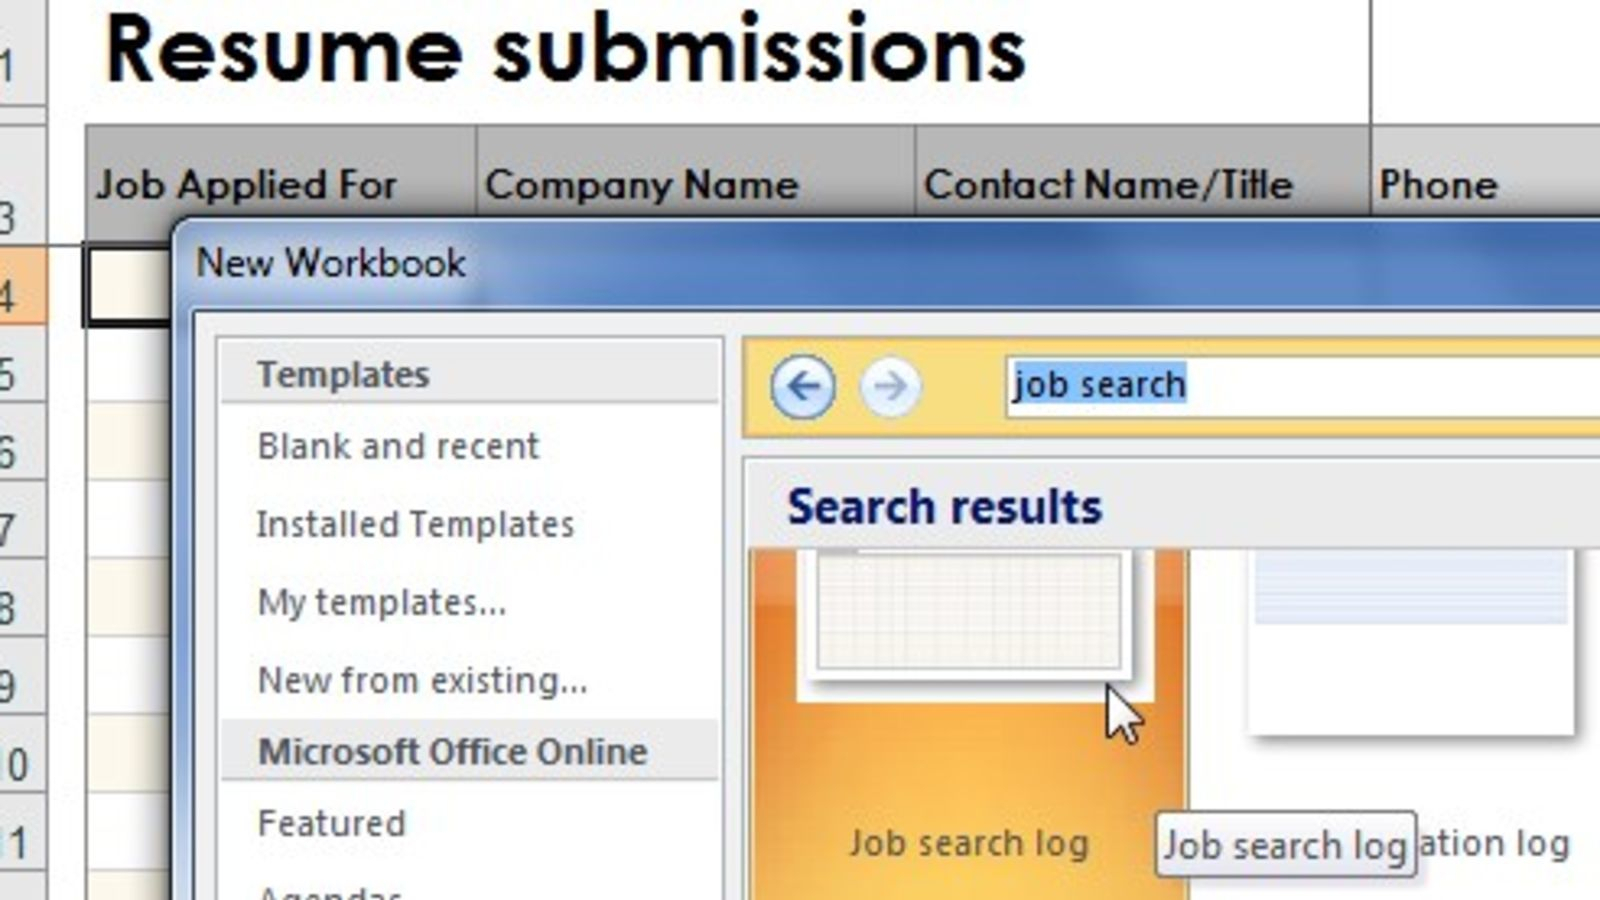 Job Tracking Spreadsheet For Create A Log To Keep Track Of Your Job Search Job Tracking Spreadsheet Google Spreadshee Google Spreadshee job tracker spreadsheet